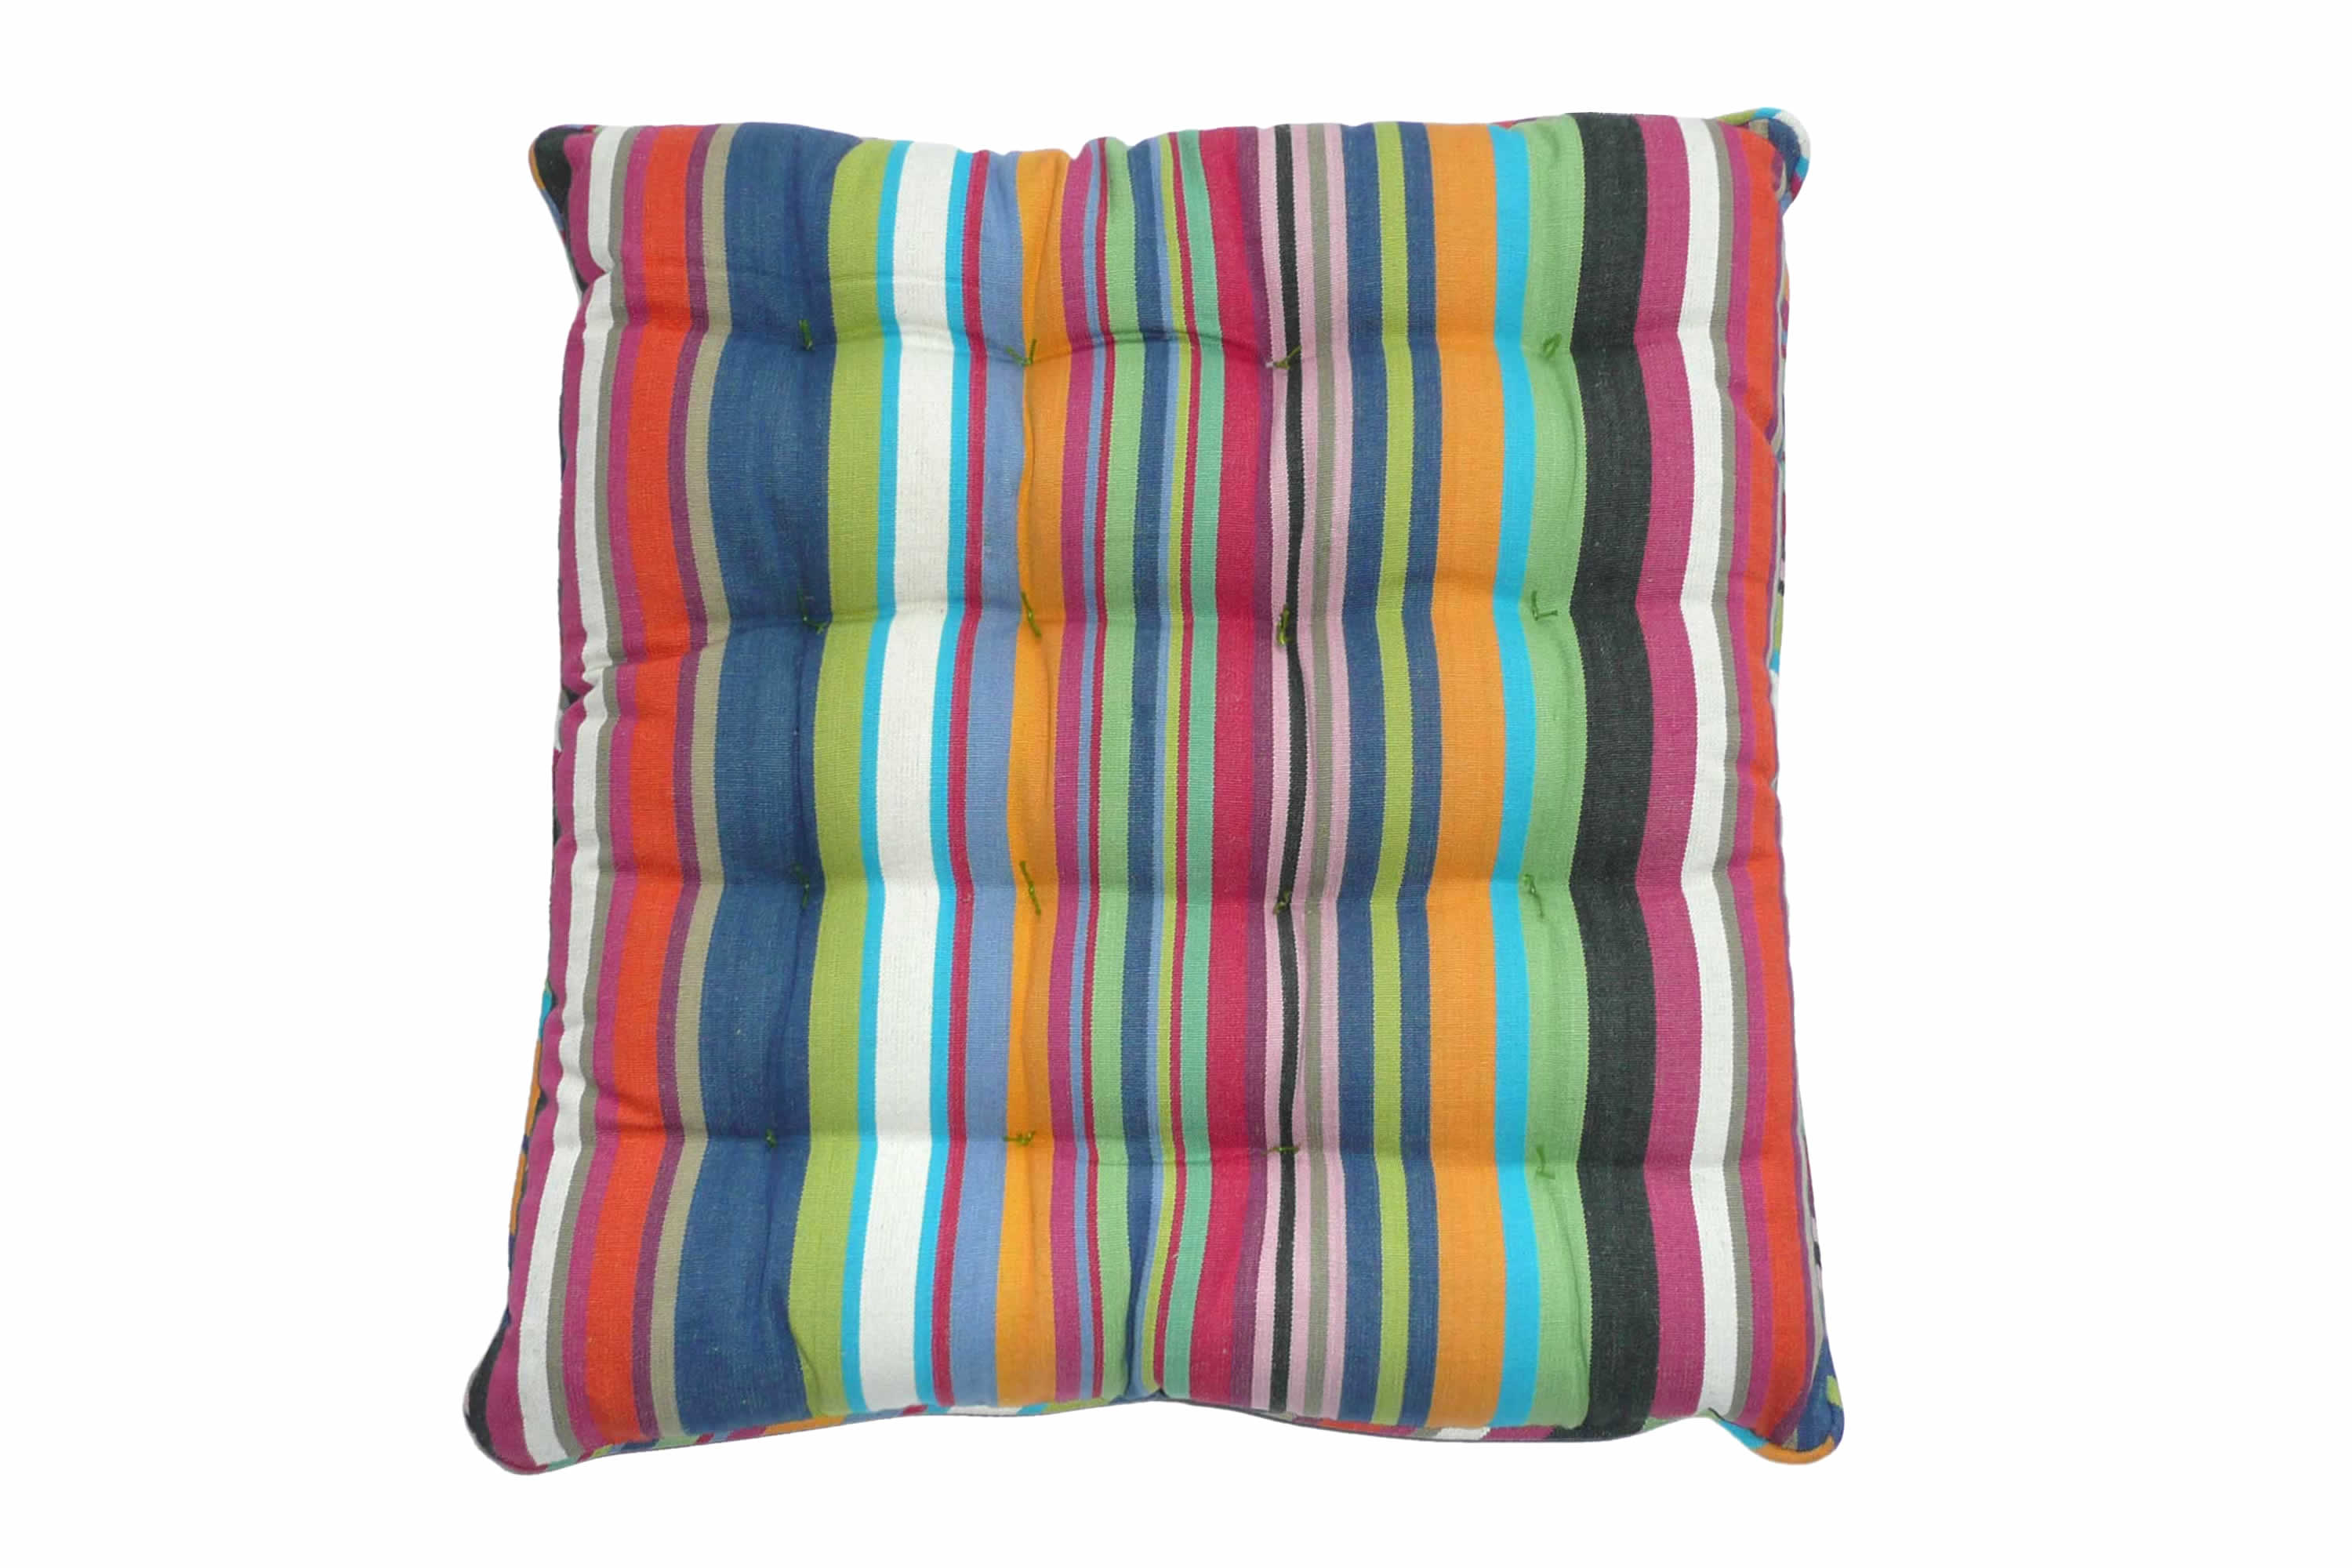 Multi-coloured Striped Seat Pads with Piping